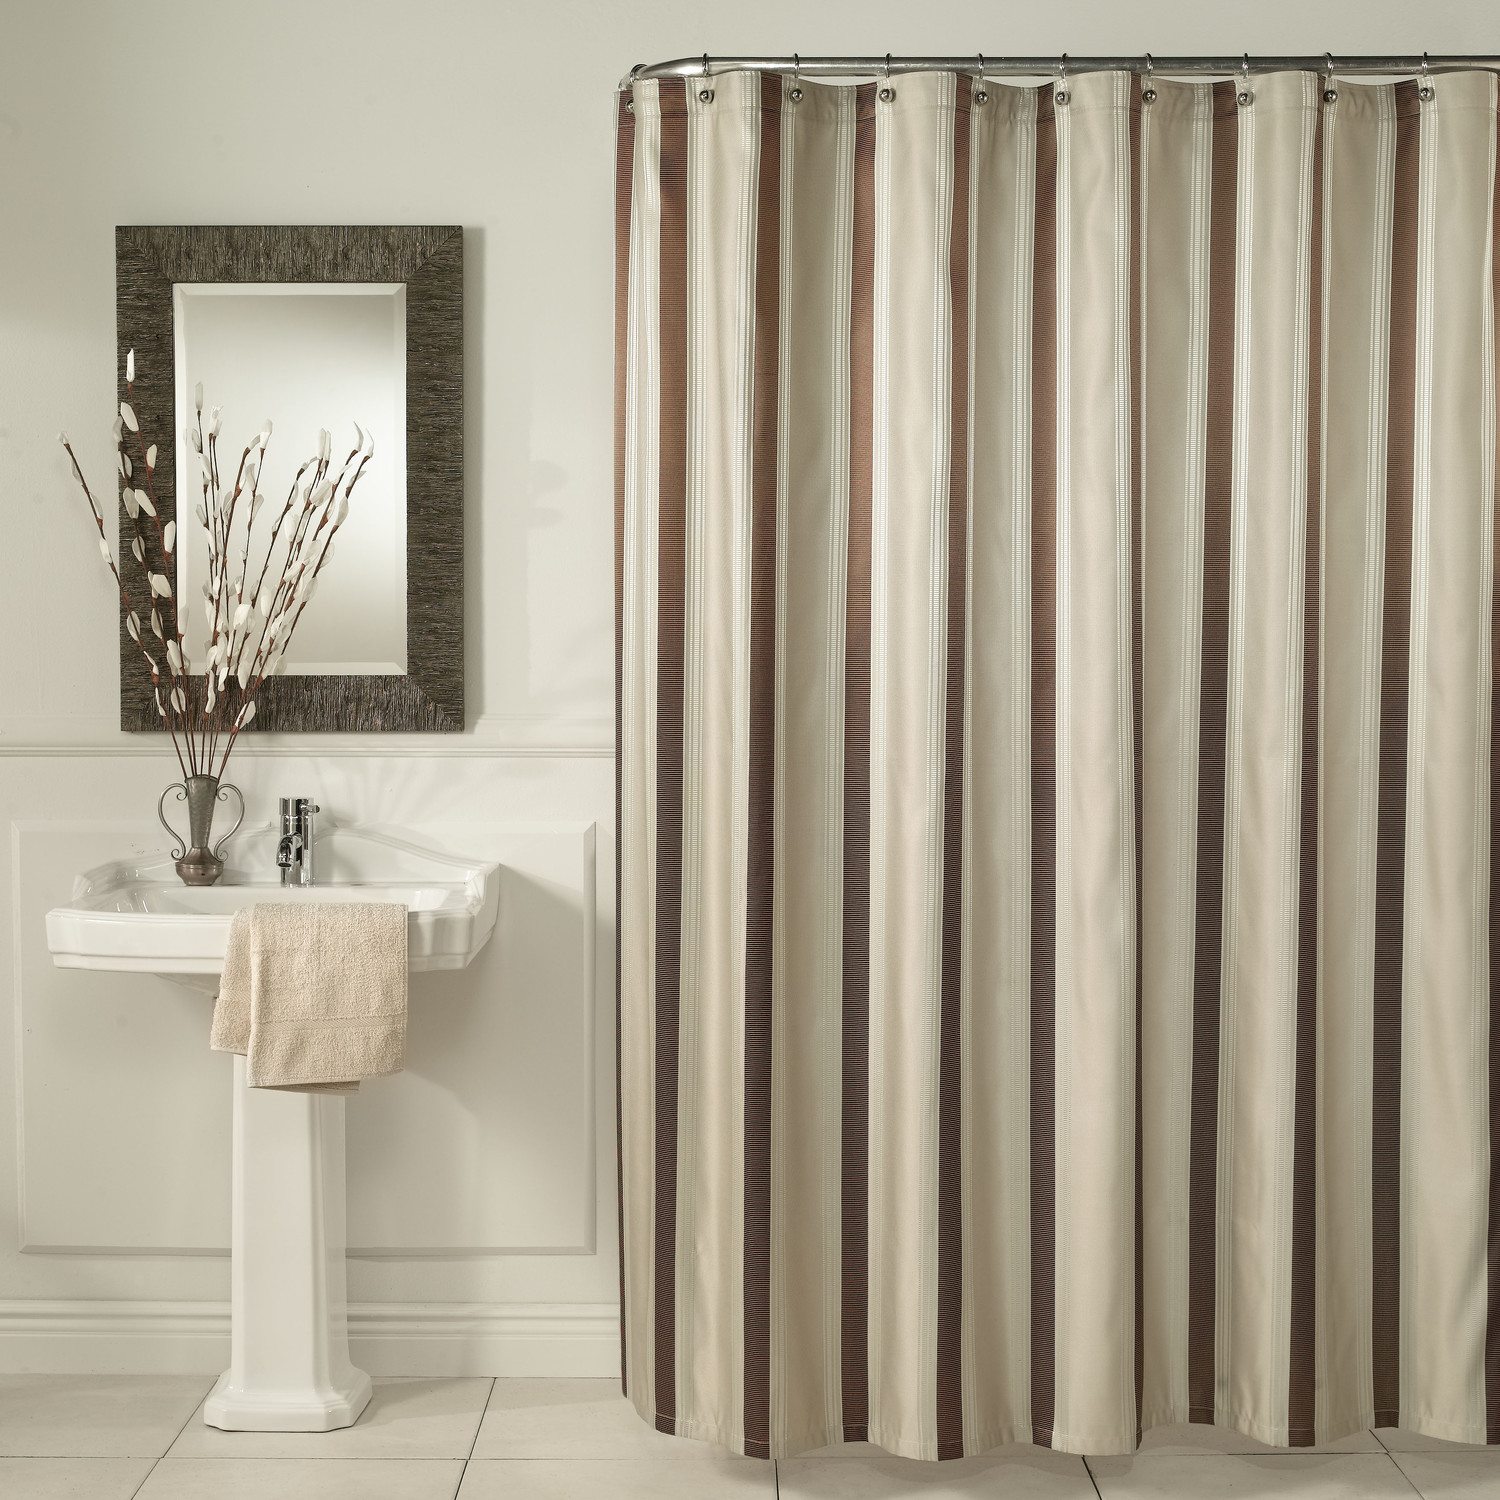 Bed Bath And Beyond Shower Curtains Brown Vertical Striped